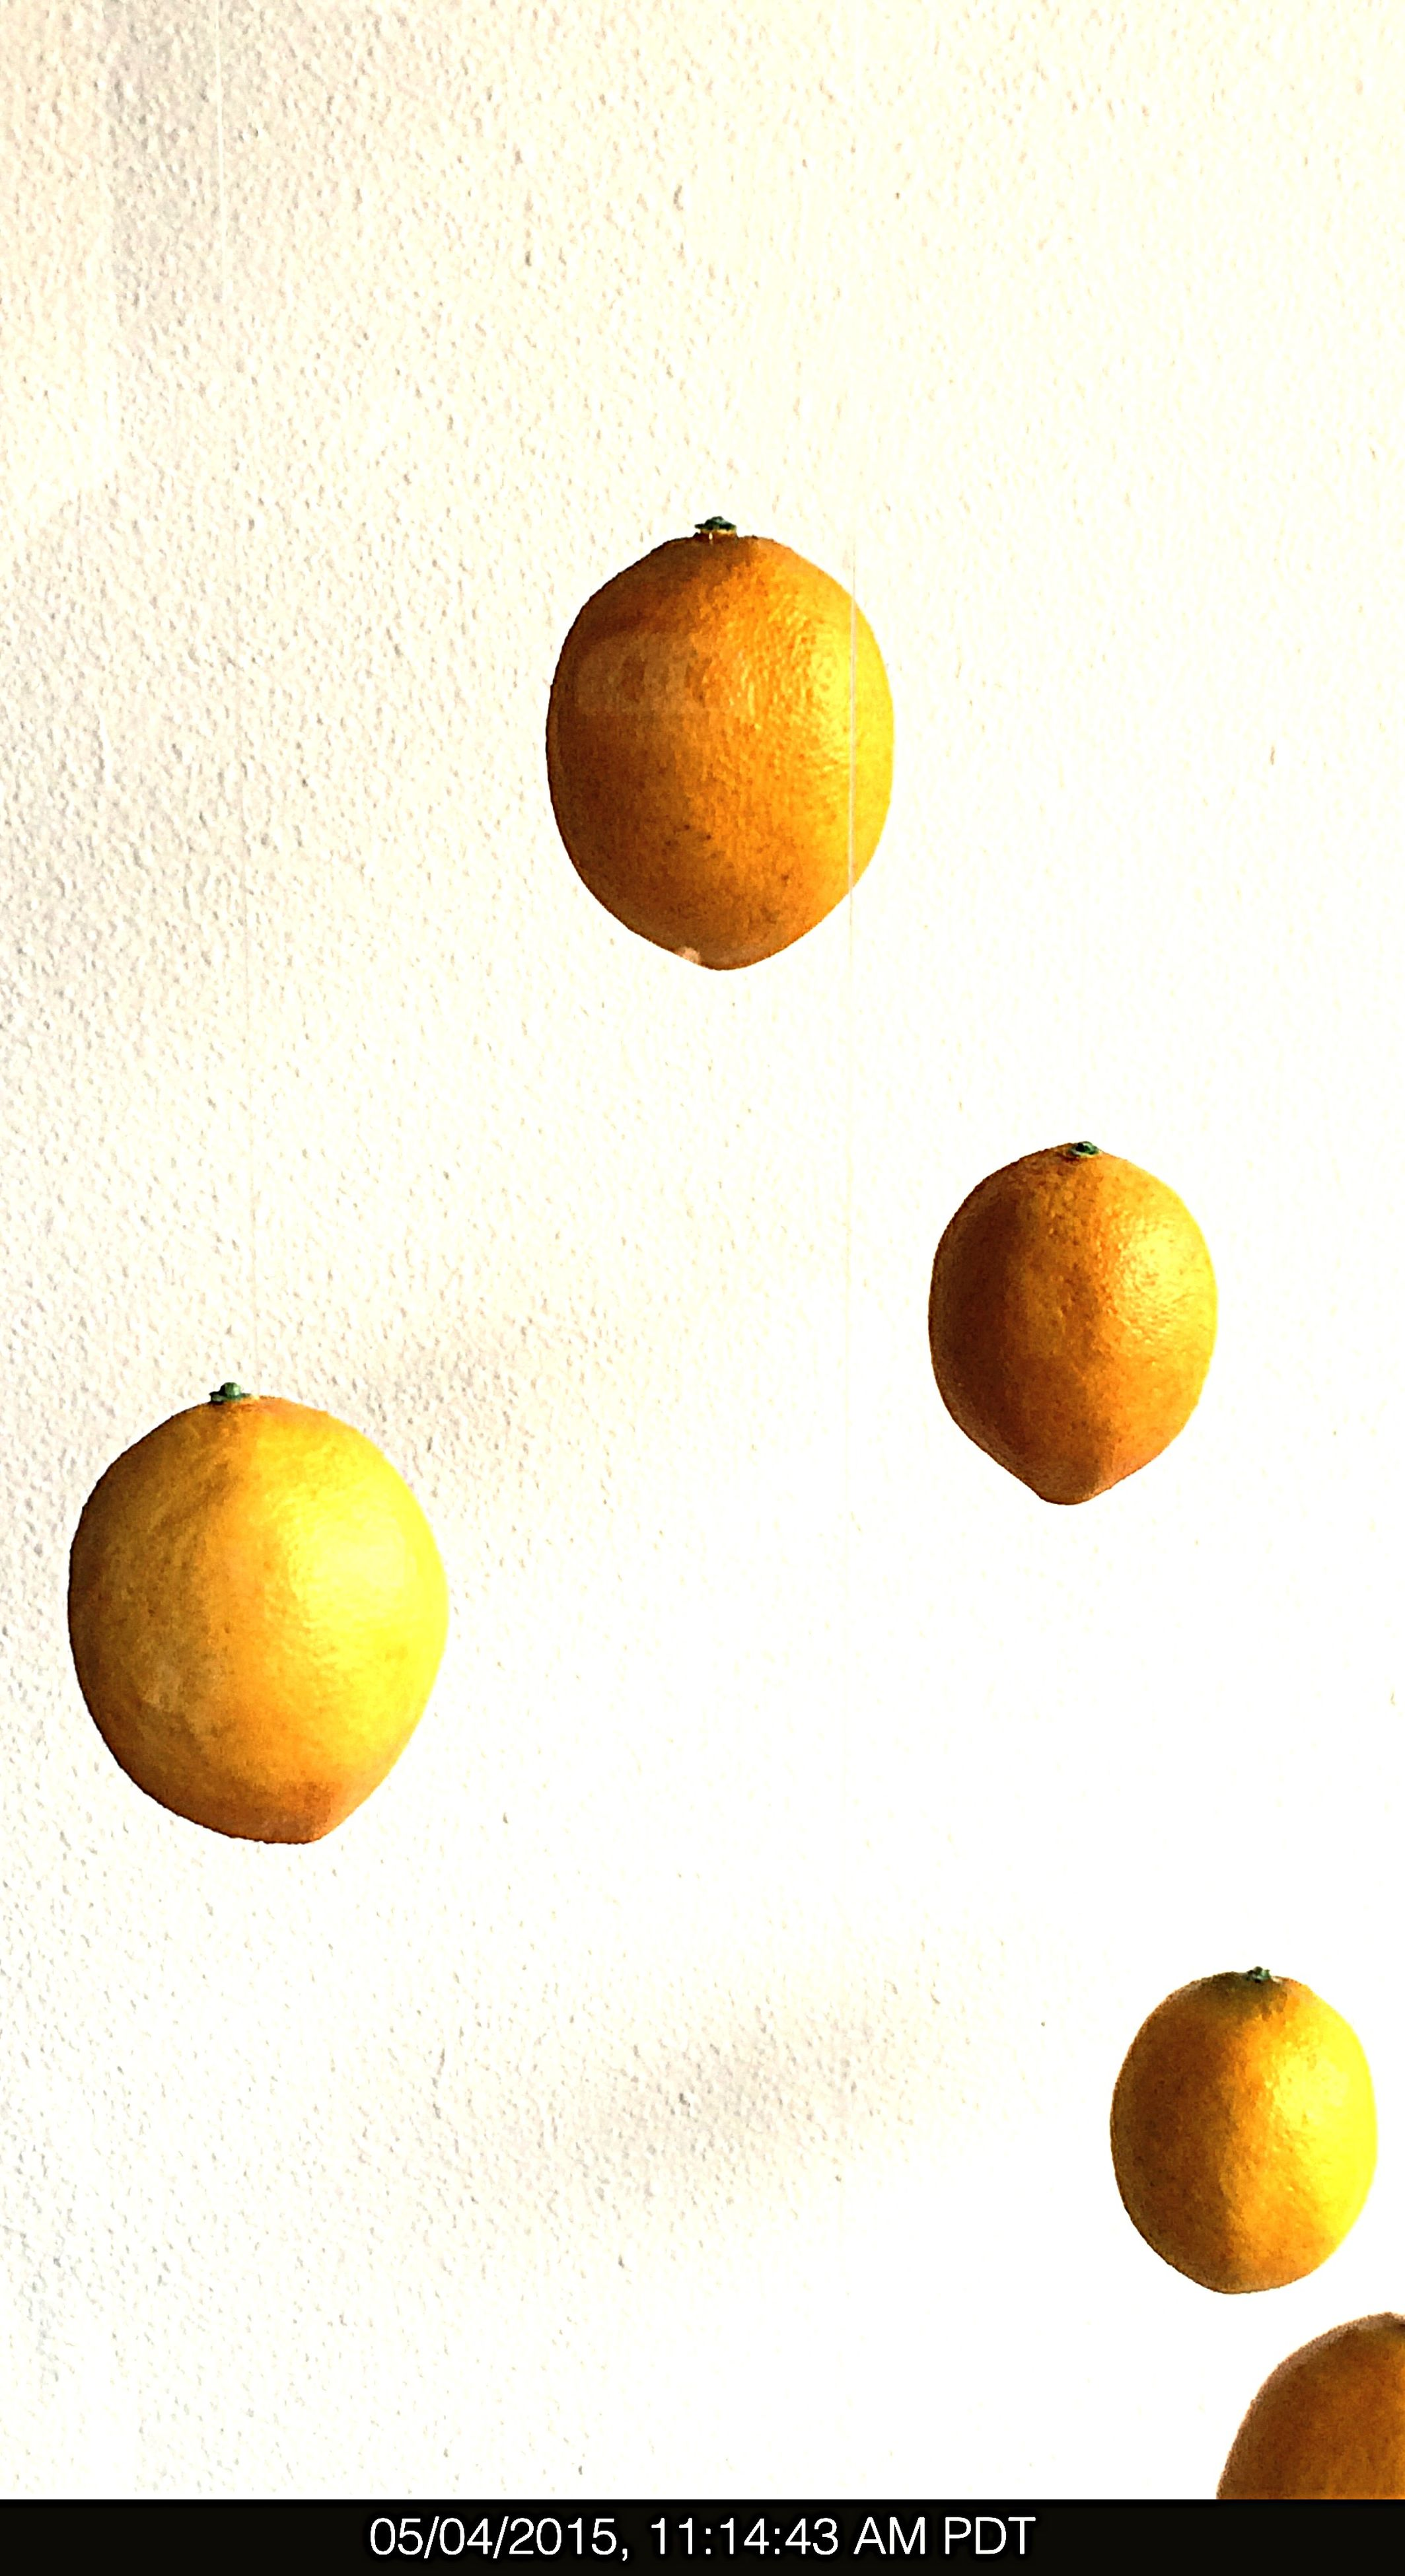 sphere, yellow, fruit, orange color, food and drink, low angle view, copy space, food, clear sky, circle, no people, close-up, citrus fruit, still life, geometric shape, orange - fruit, healthy eating, pattern, pumpkin, outdoors